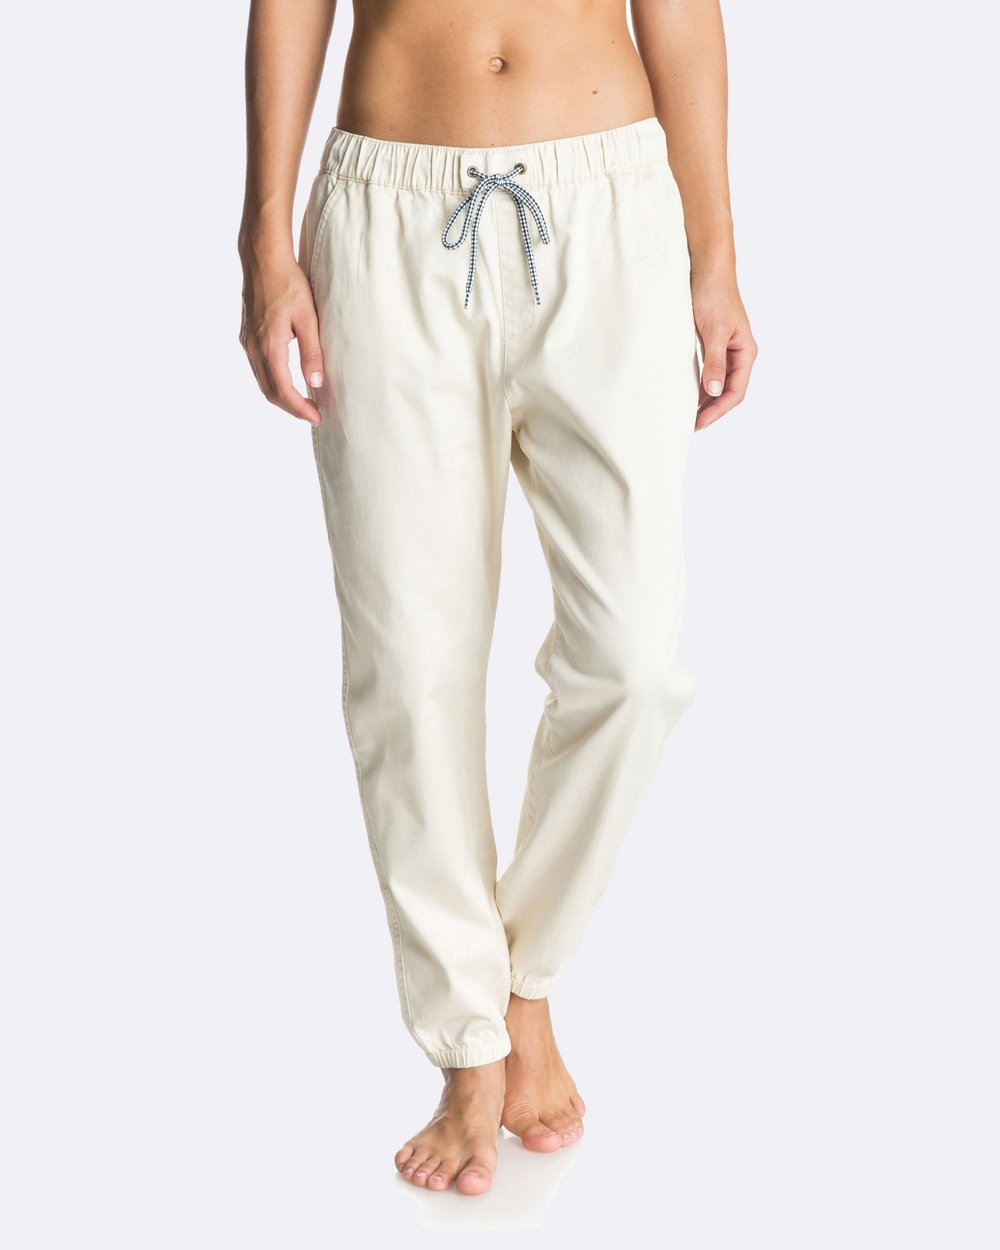 6f1260fde6 Womens Beachy Beach Pant by Roxy Online | THE ICONIC | Australia